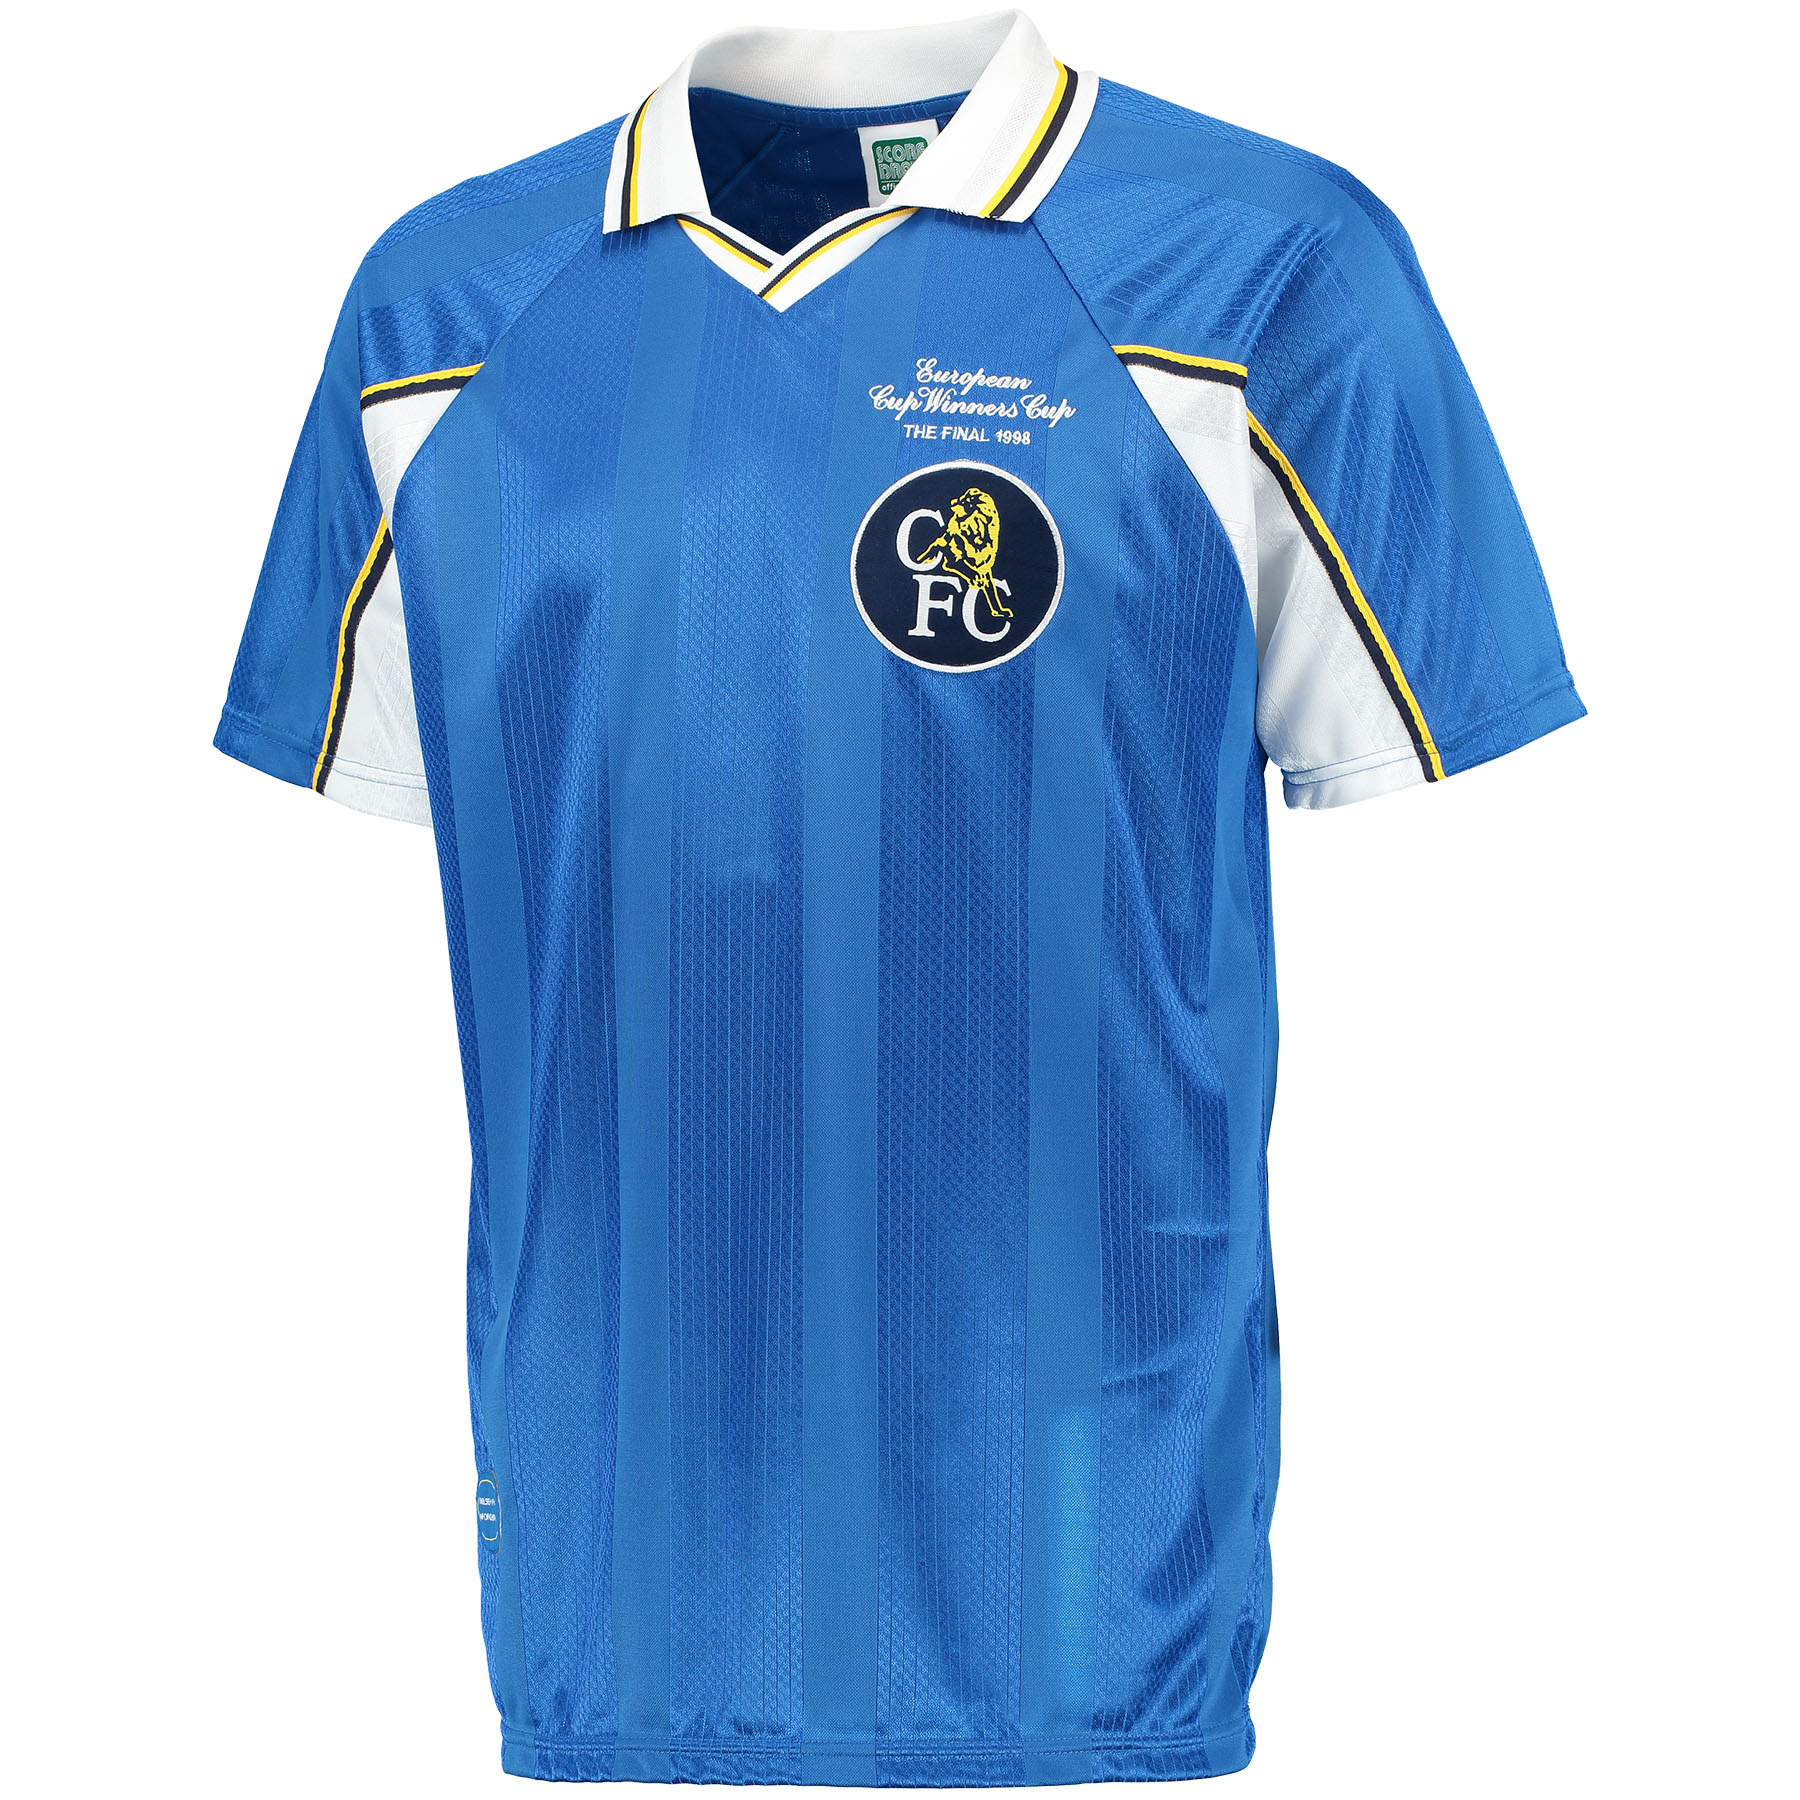 Chelsea 1998 ECWC Final shirt